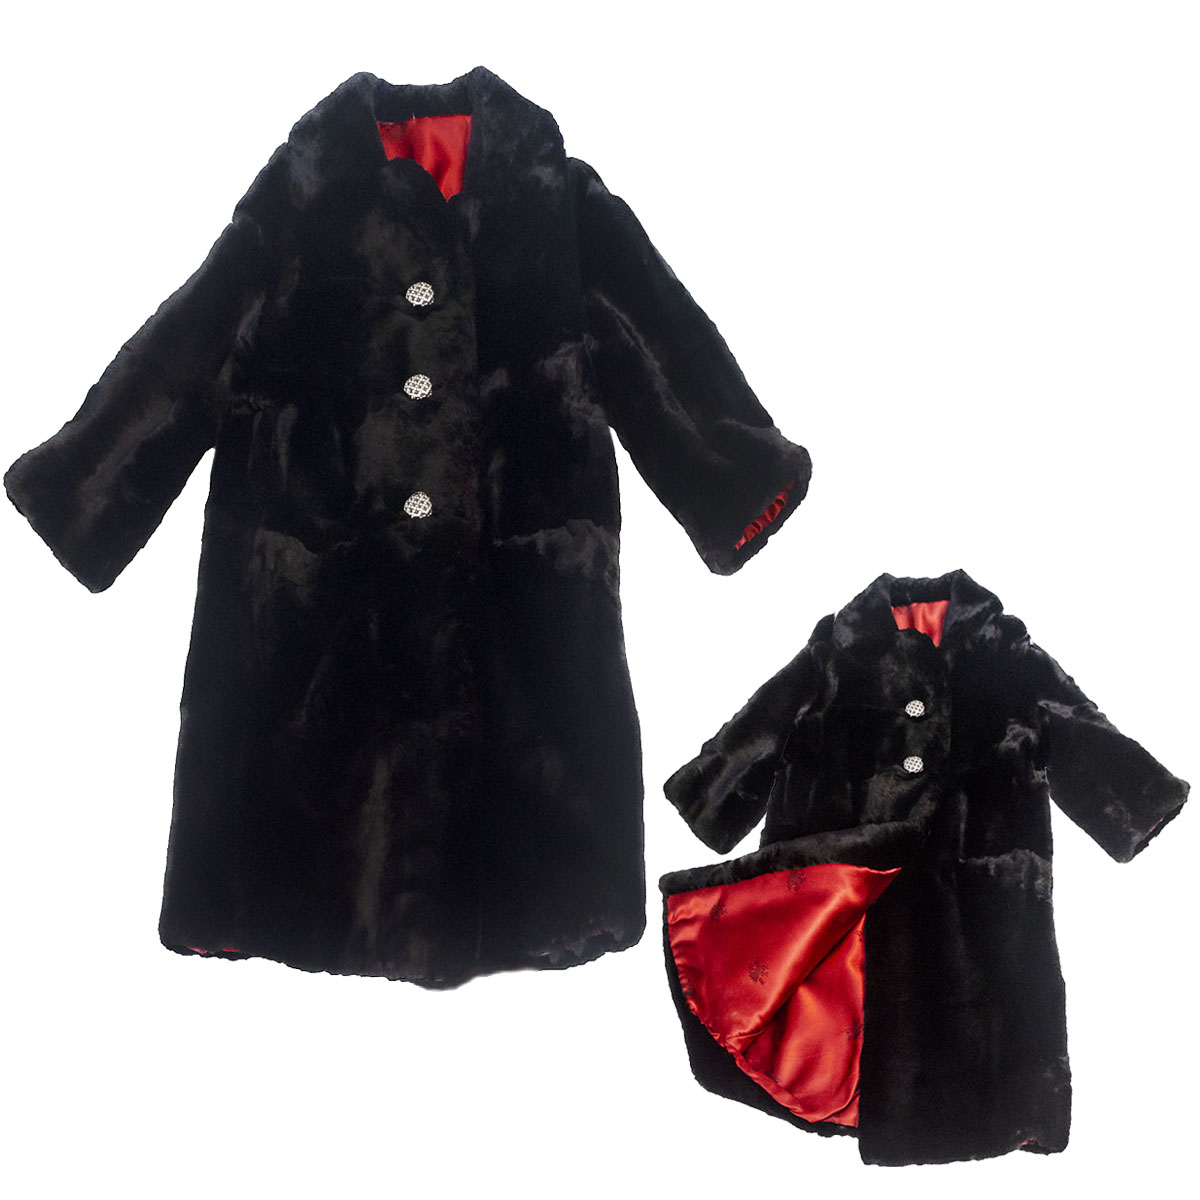 Black rabbit coat IG